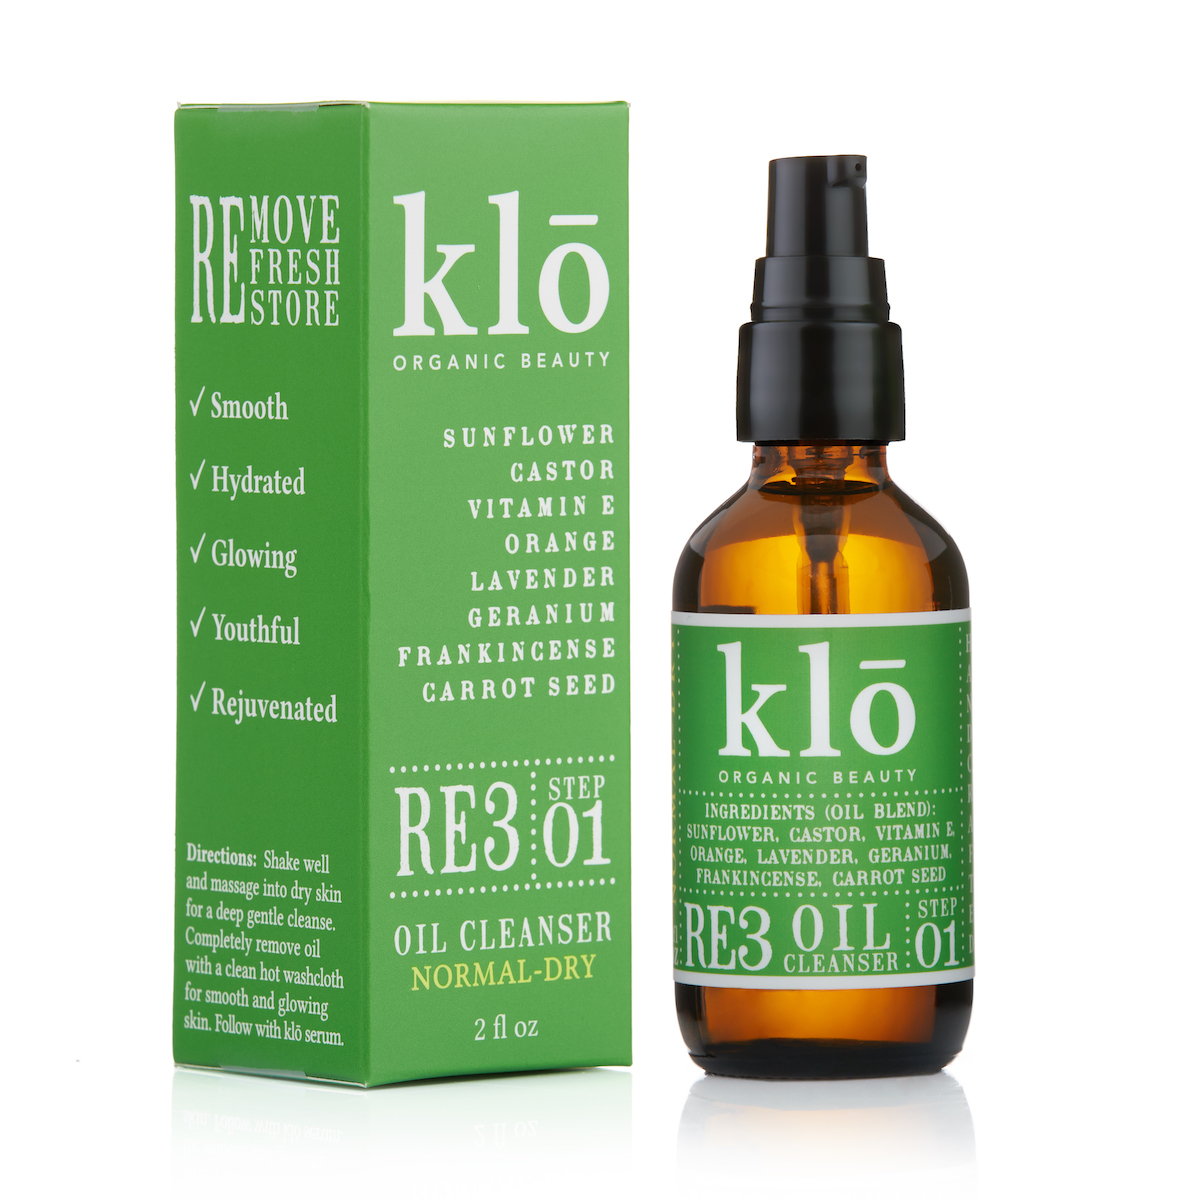 Klo Organic Beauty RE3 Oil Cleanser for Normal-Dry Skin